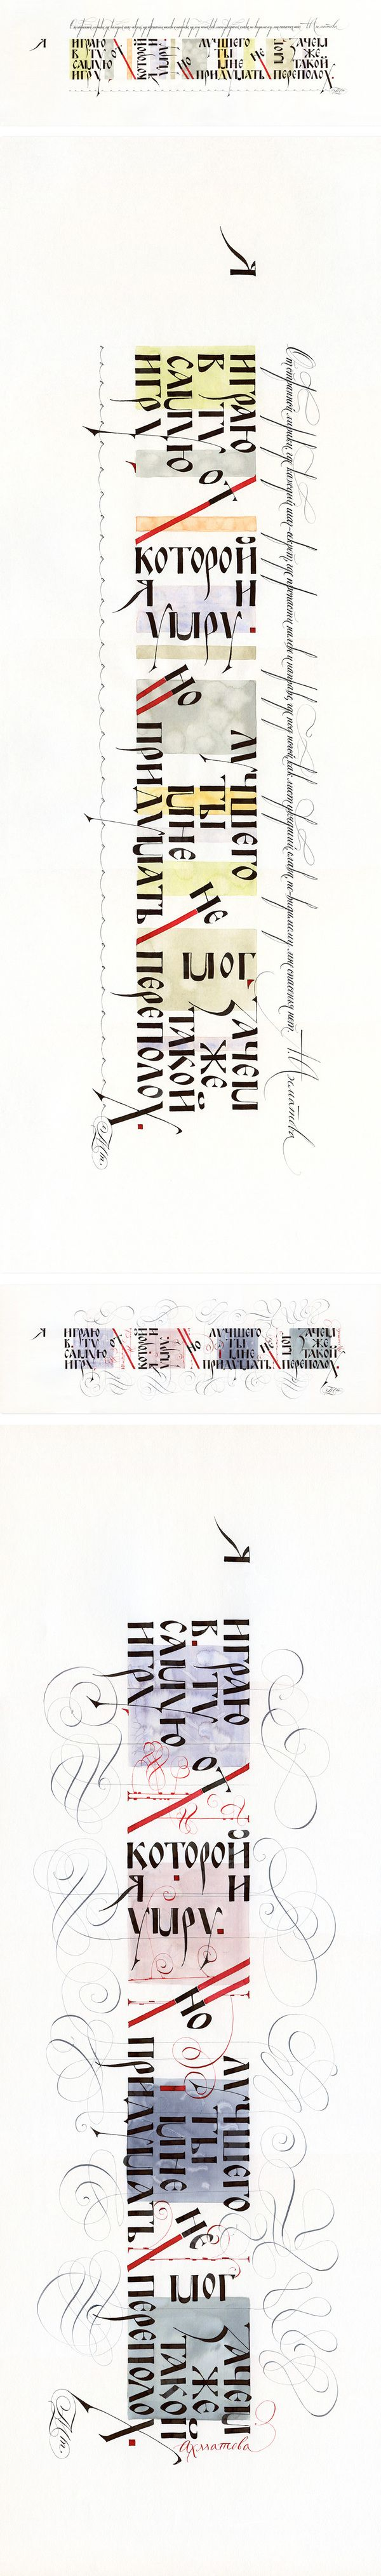 Artist:  Marina Marjina      Calligraphy:  A quote from Romain Rolland     Paper, pointed nib, inks; 297 x 420 c     Made for calligraphy & typography Rutenia festival 2010     url:  http://www.behance.net/mmarina